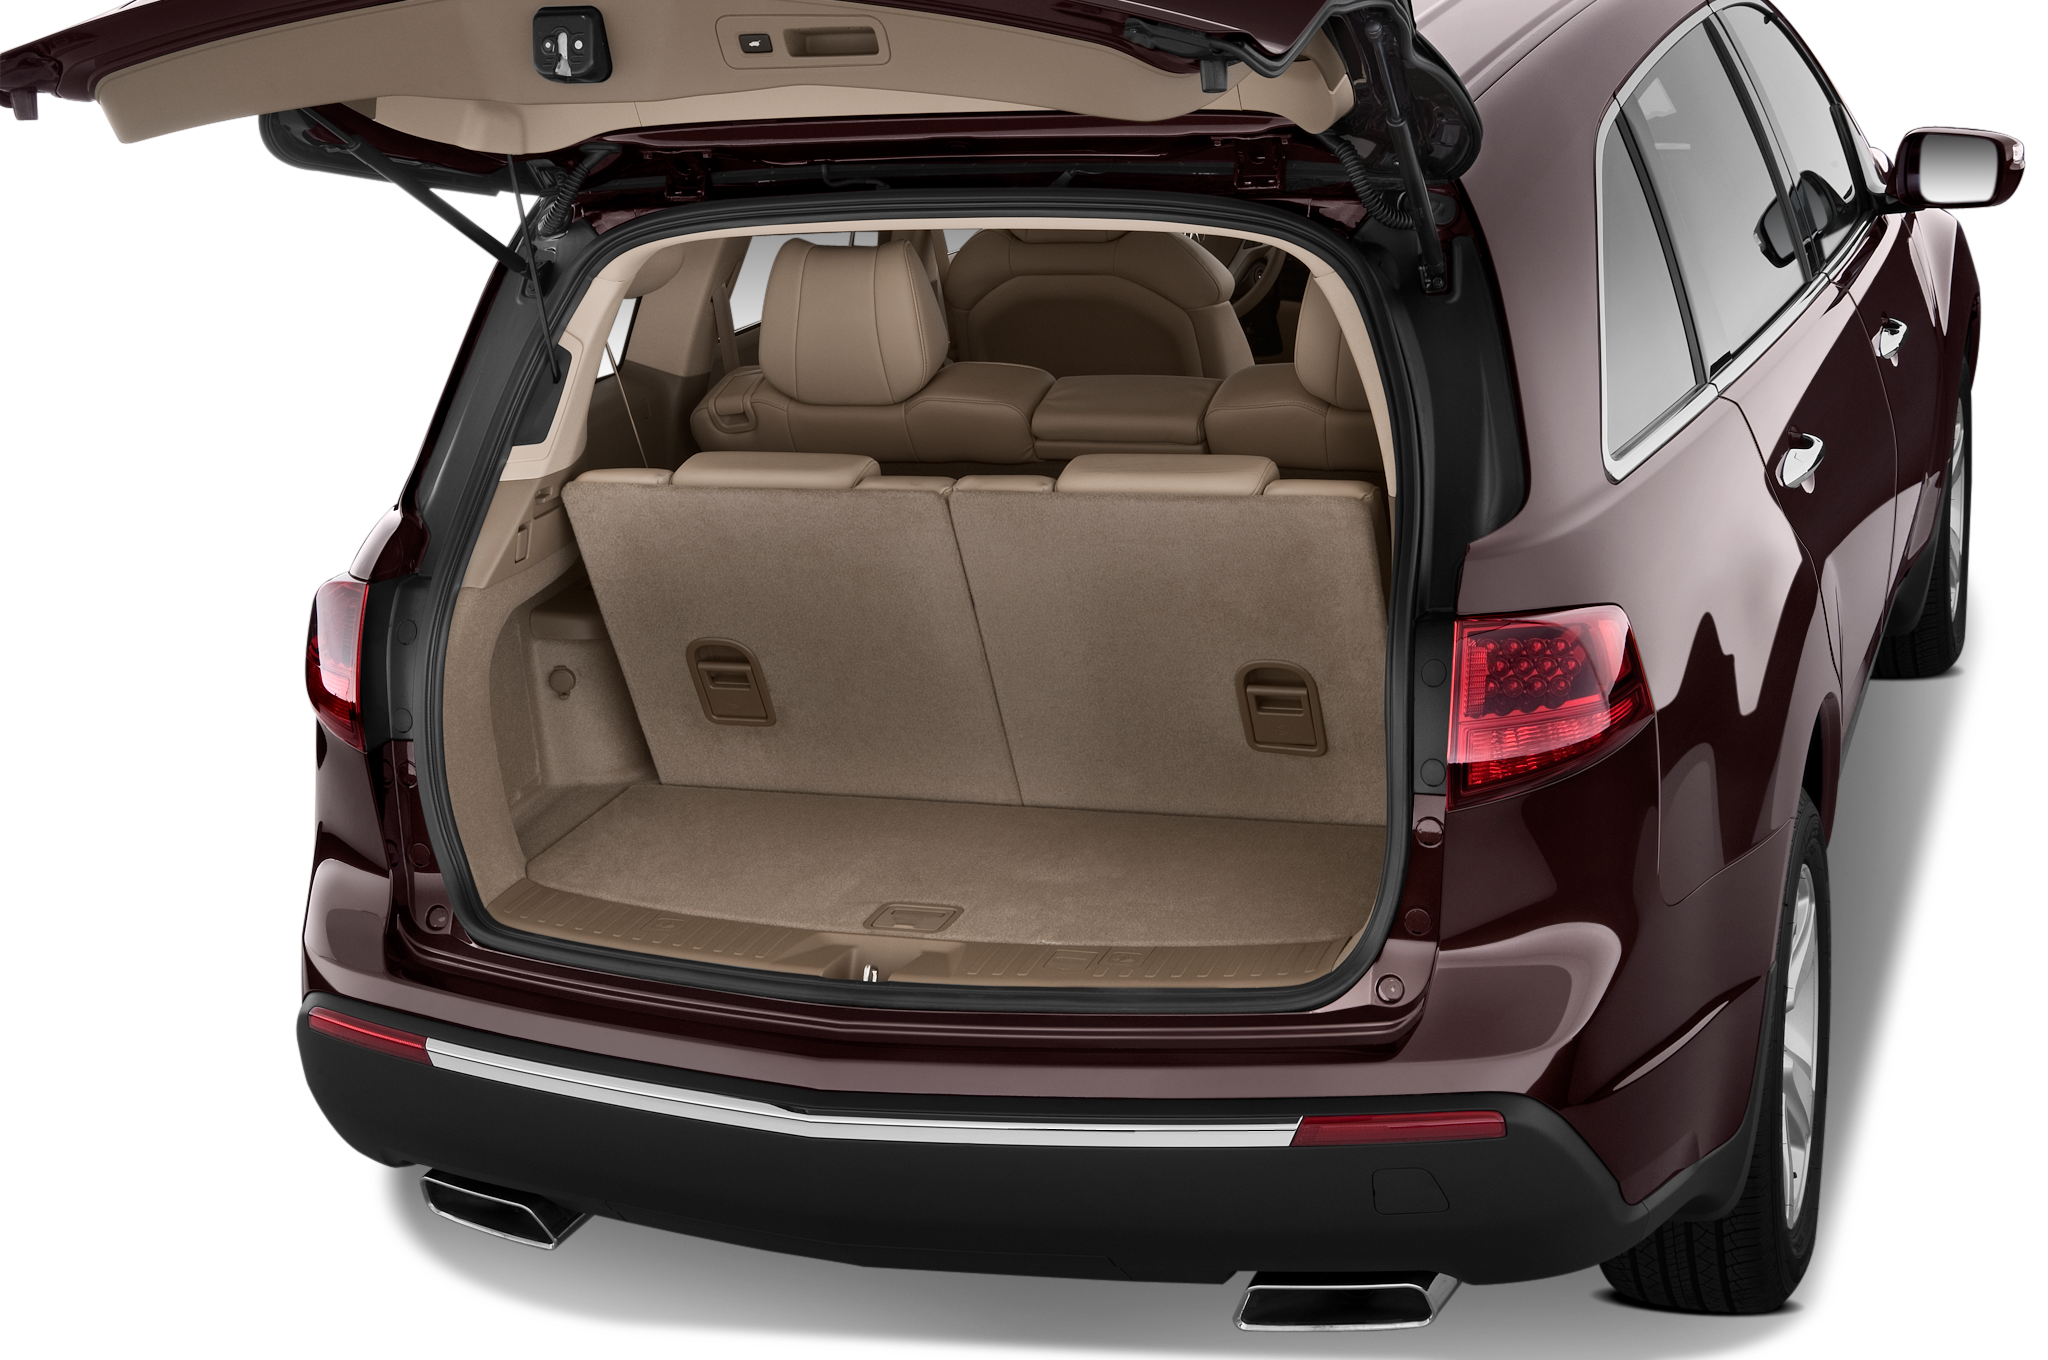 2010 acura mdx acura luxury crossover suv review. Black Bedroom Furniture Sets. Home Design Ideas